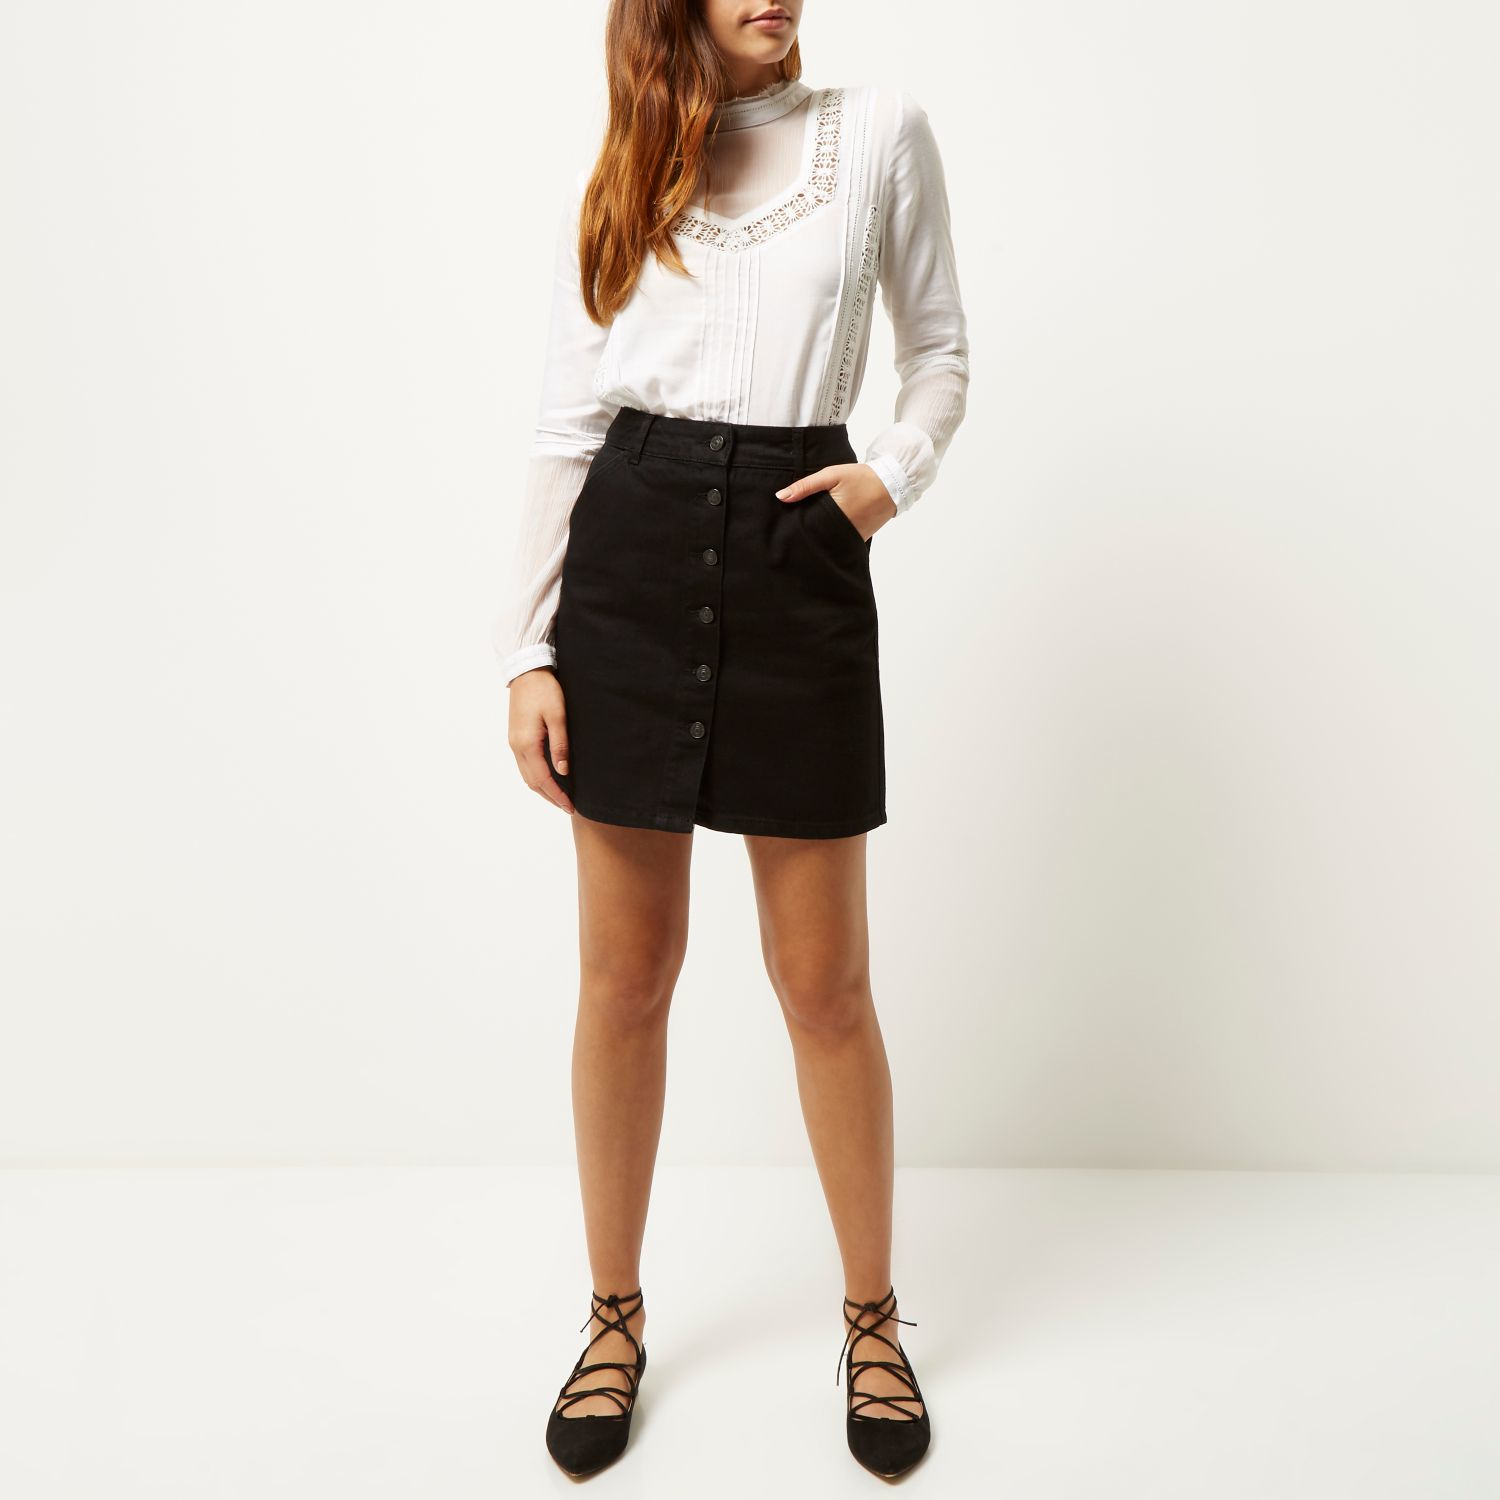 River island Black Denim Button-up A-line Skirt in Black | Lyst